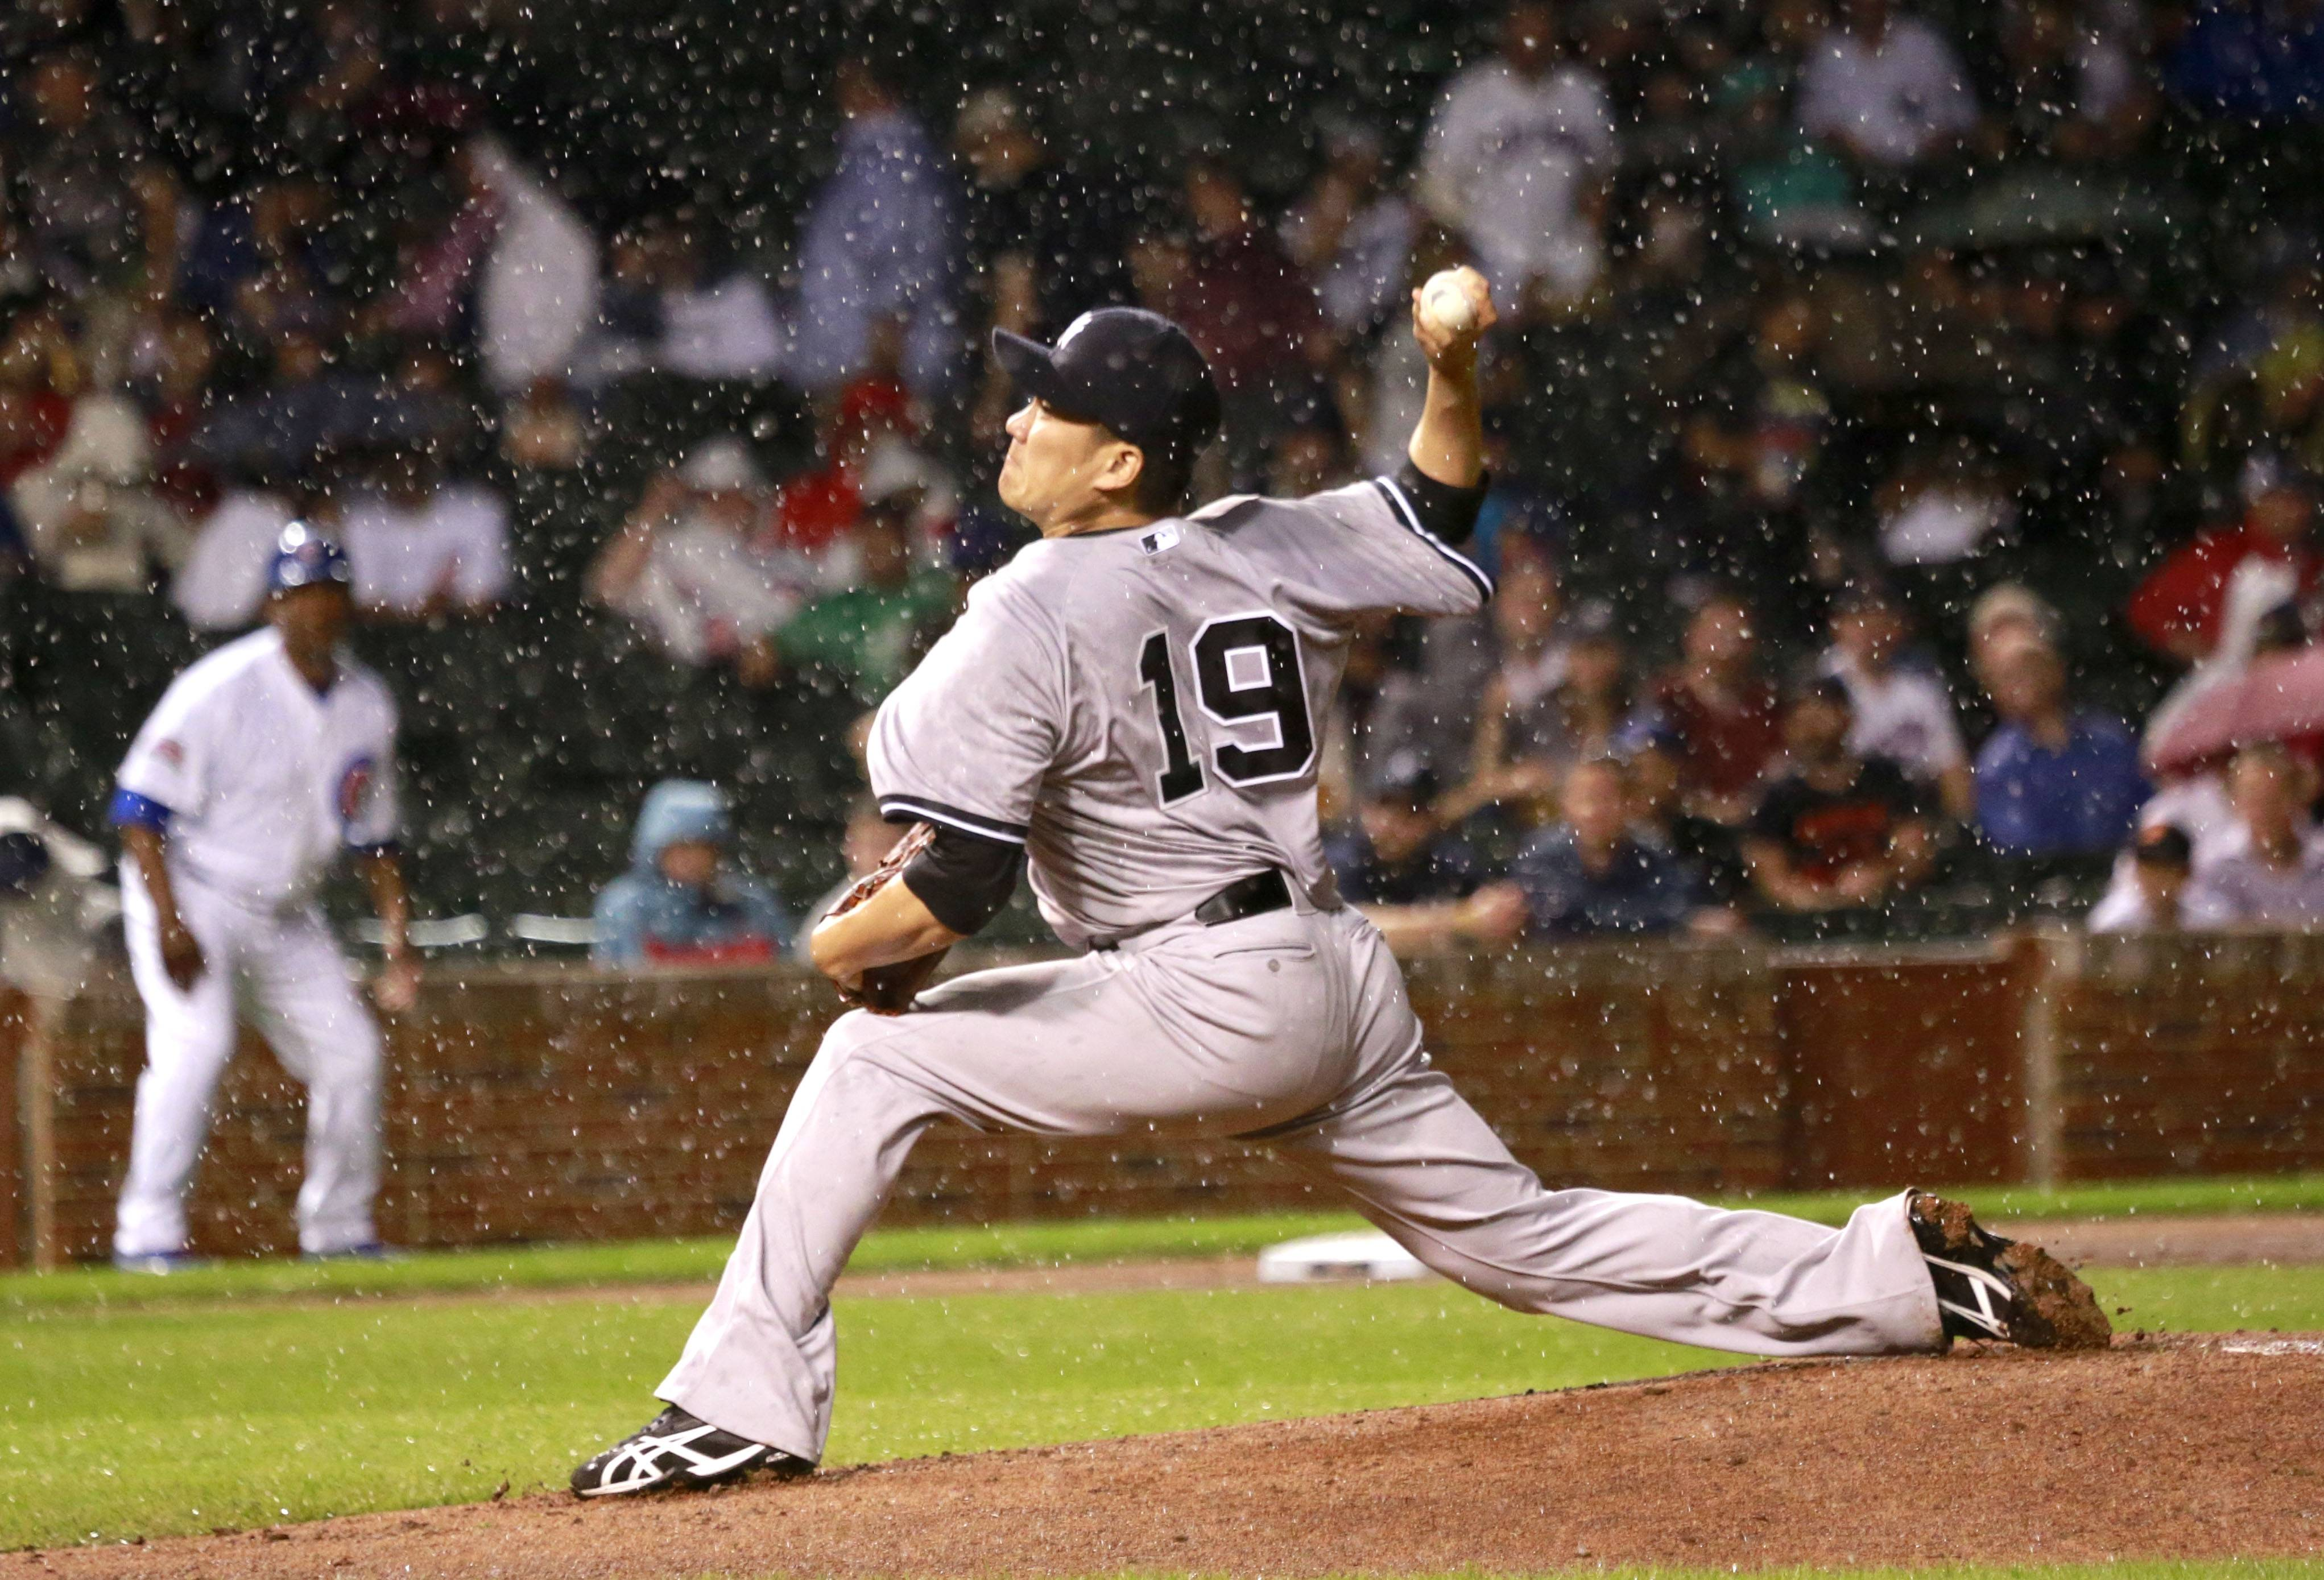 New York Yankees starting pitcher Masahiro Tanaka delivers in a steady rain during the third inning of an interleague baseball game against the Chicago Cubs on Tuesday in Chicago.